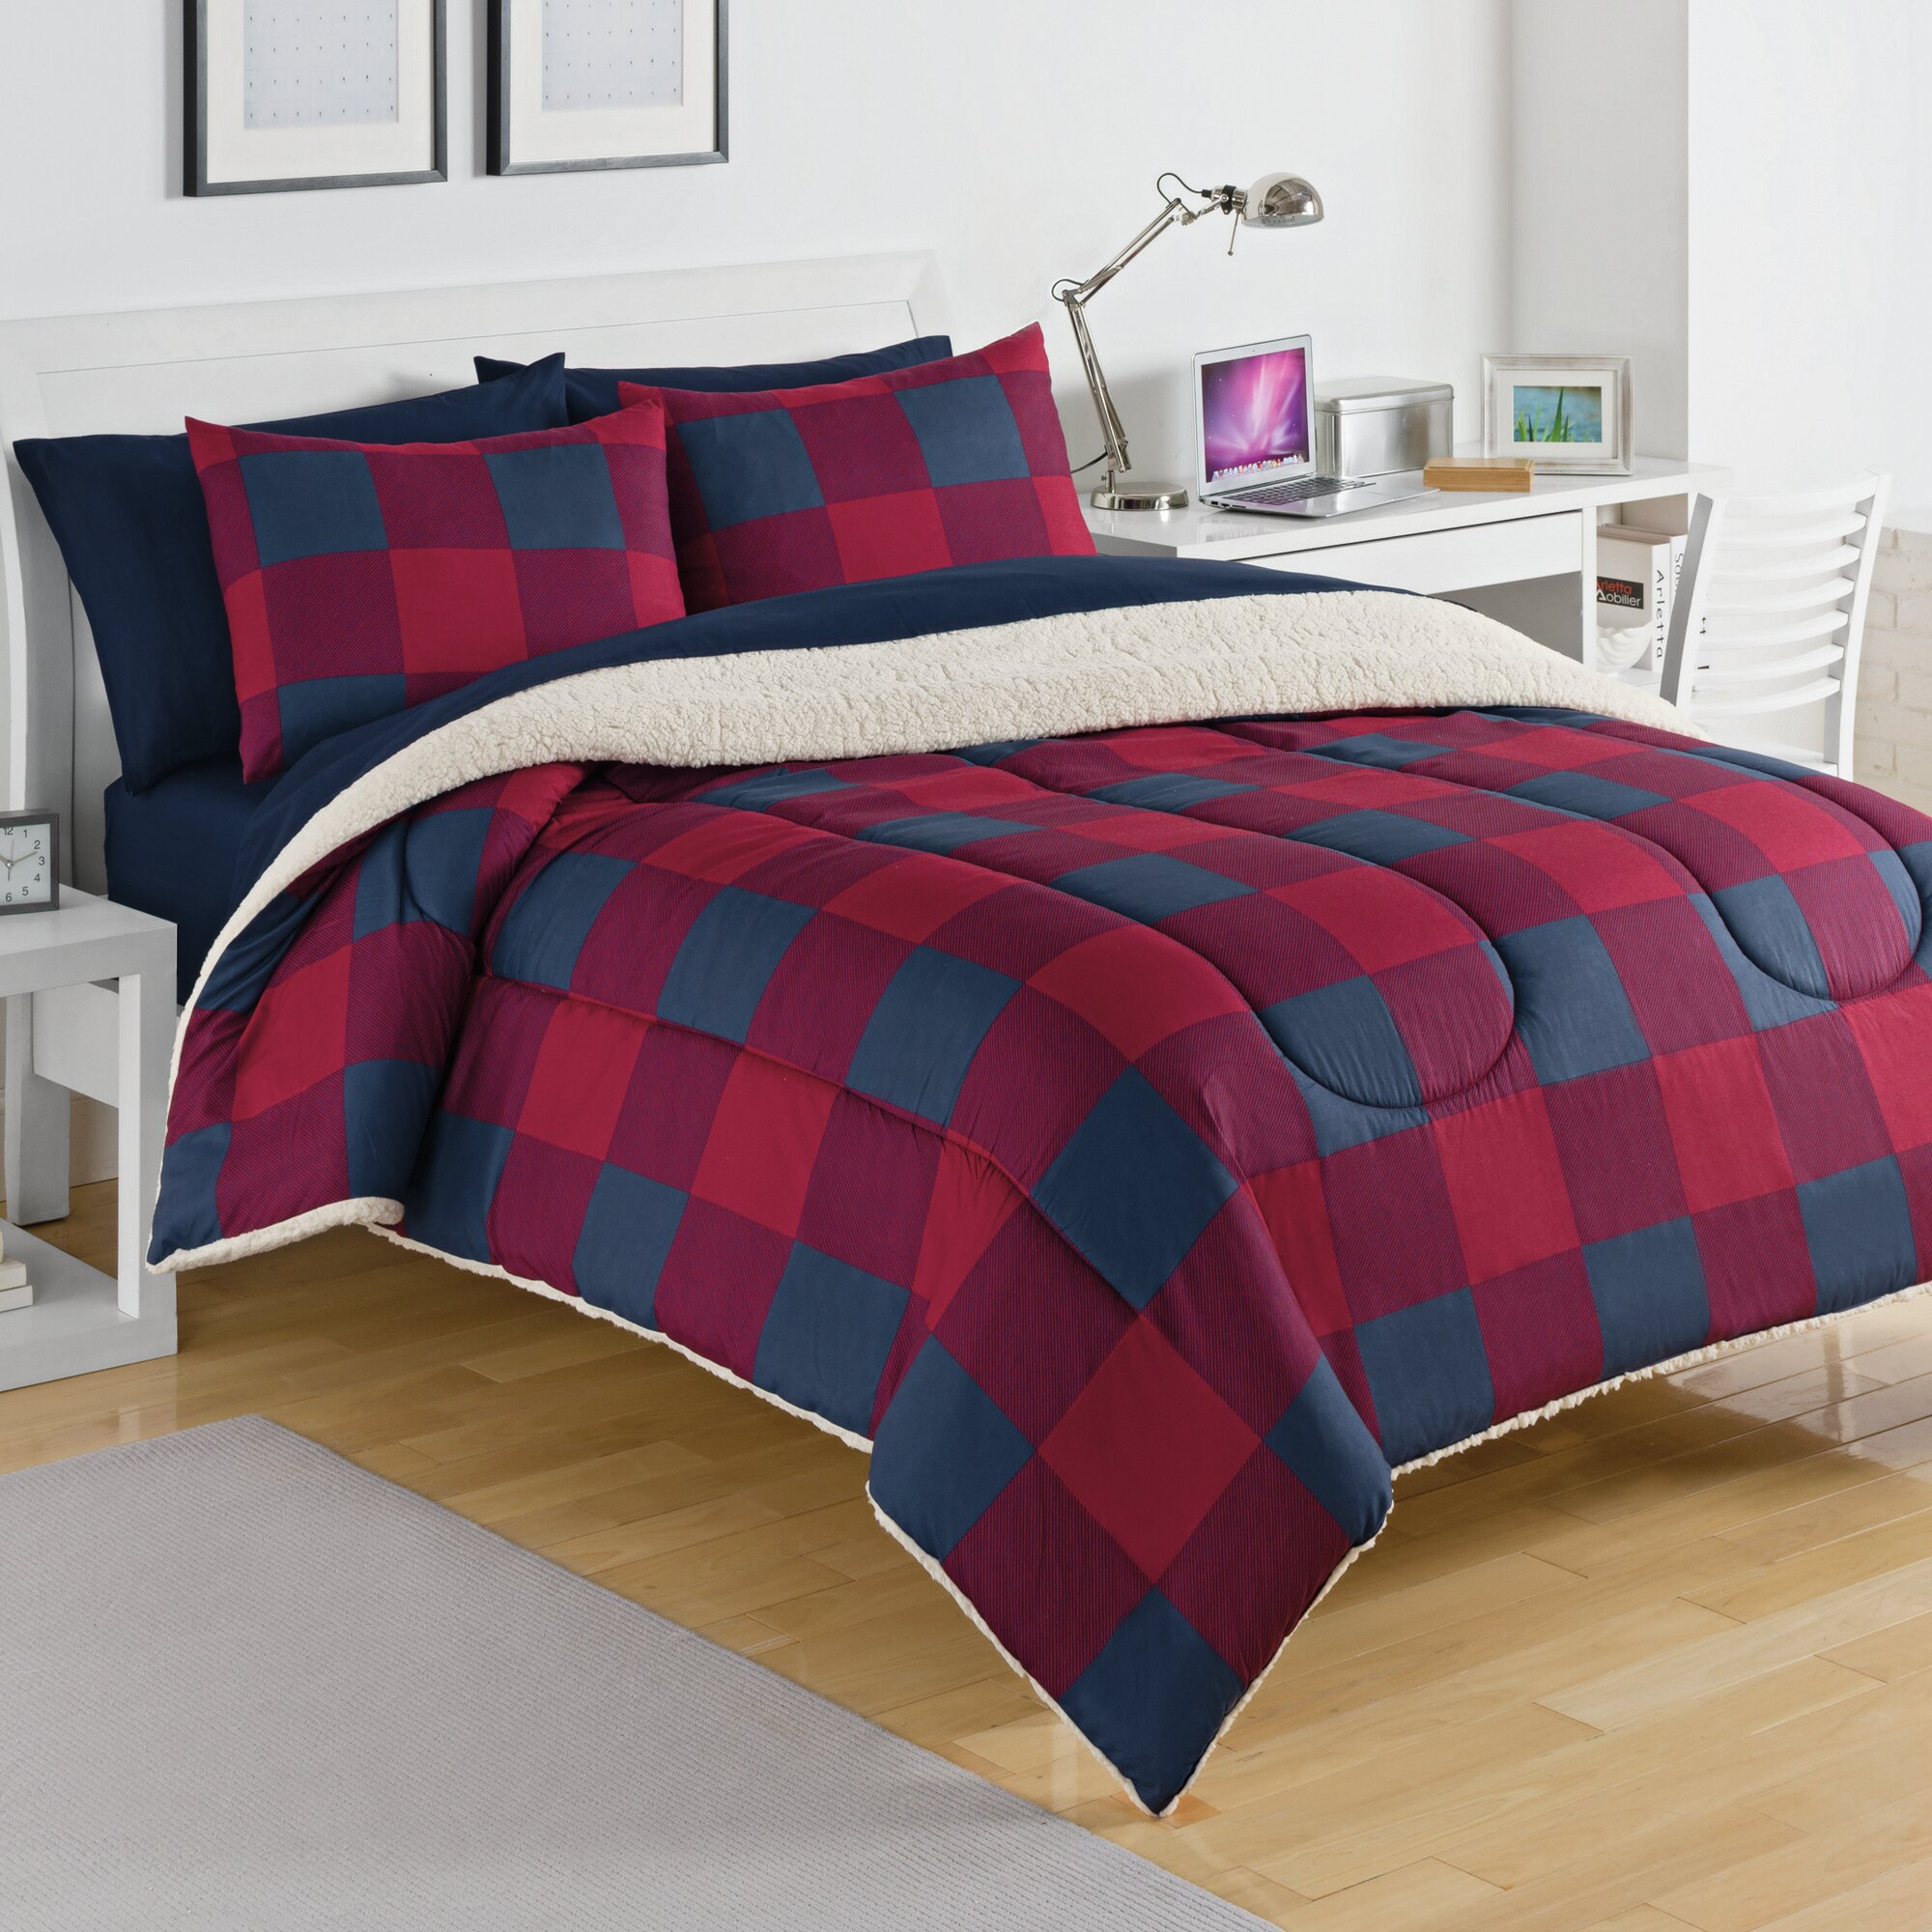 daybed beds comforter king blue size full bedding cheap comforters queen plaid bed for sets under